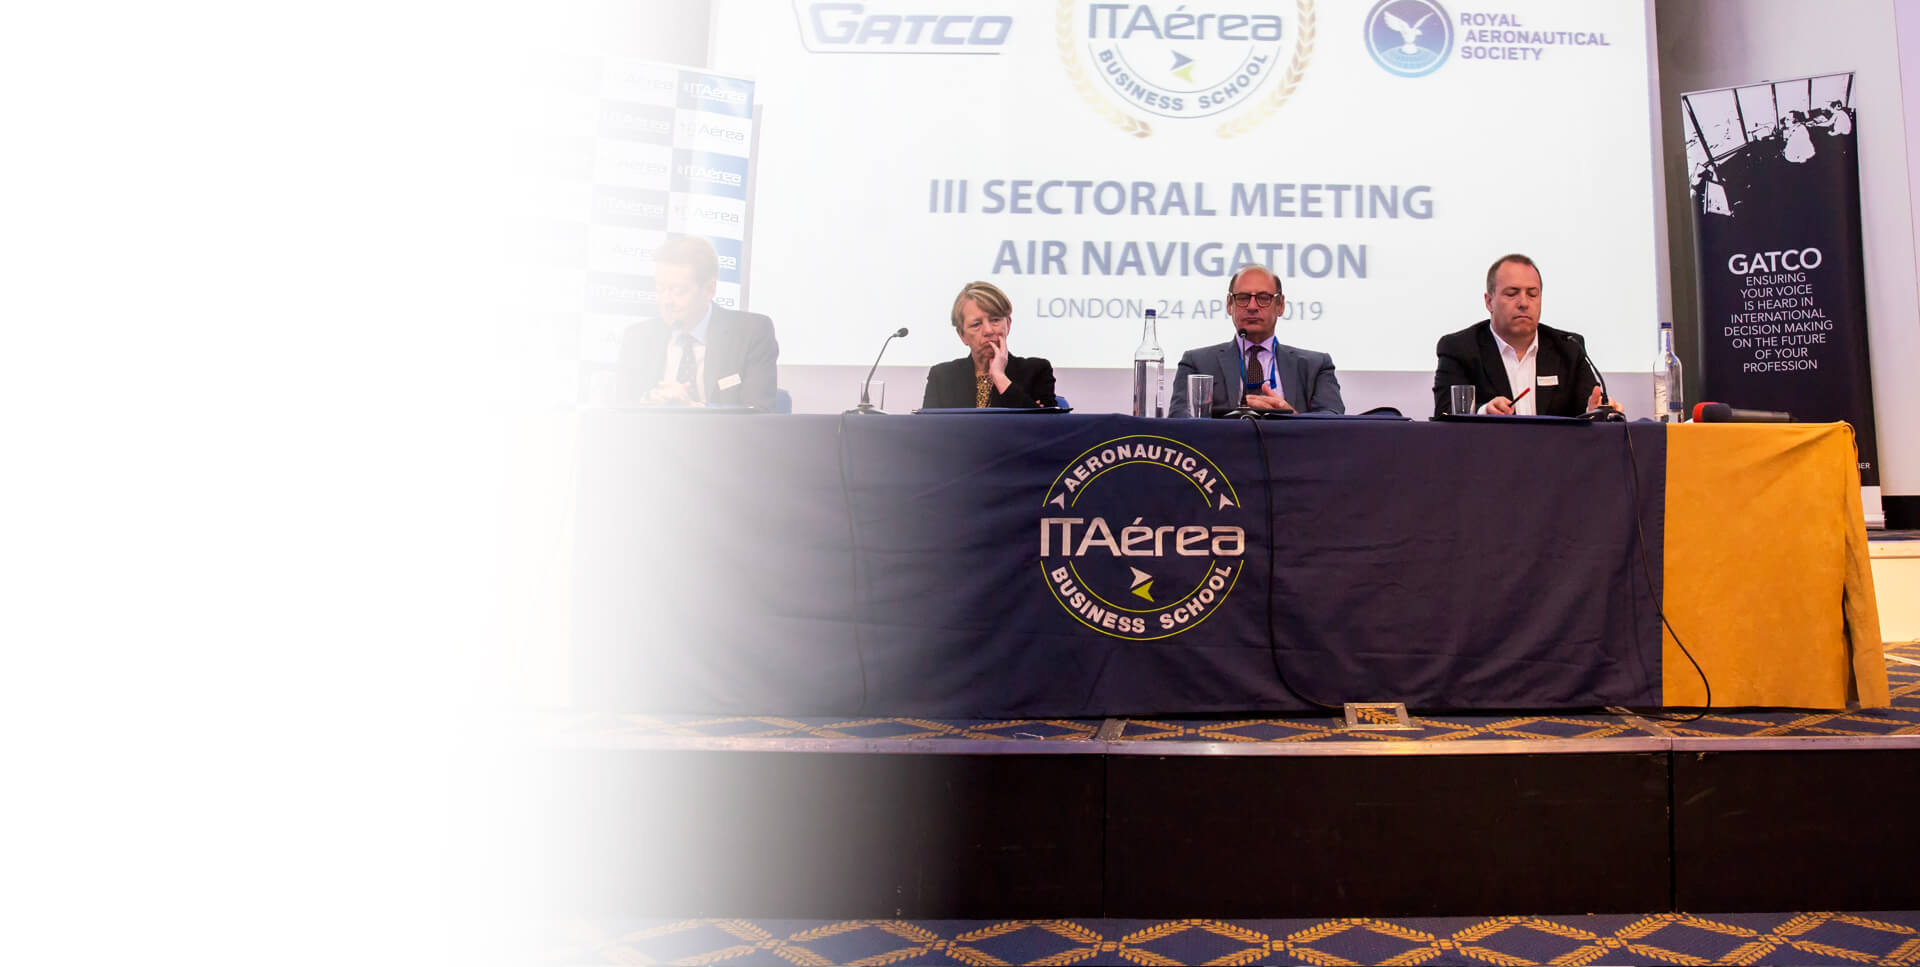 <span class='negritaslide'>Highlights of the<br />III Sectoral Meeting on<br />Air Navigation organised <br />by ITAérea in the</span>